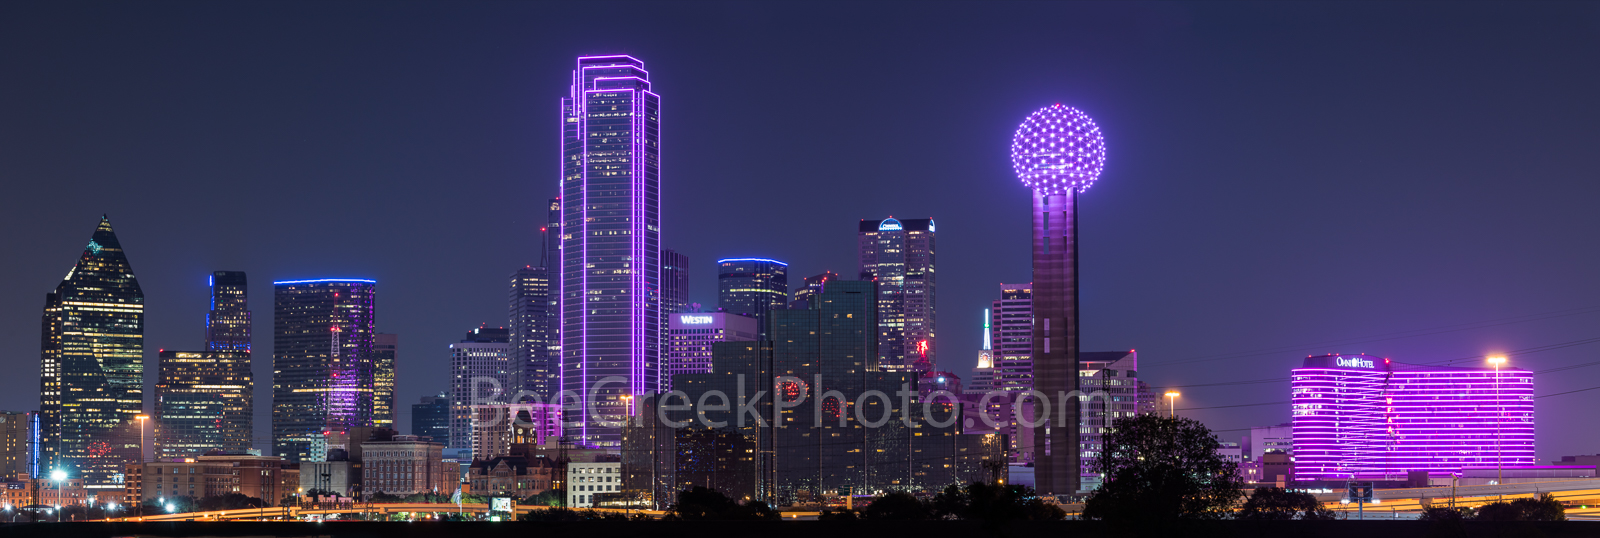 Dallas Skyline, photo, pink, panorama, city, Bank of America, Reunion Tower, Omni, event, Breast cancer, Susan B Komen, Race for the Cure, Dallas skyline stock photos,, photo